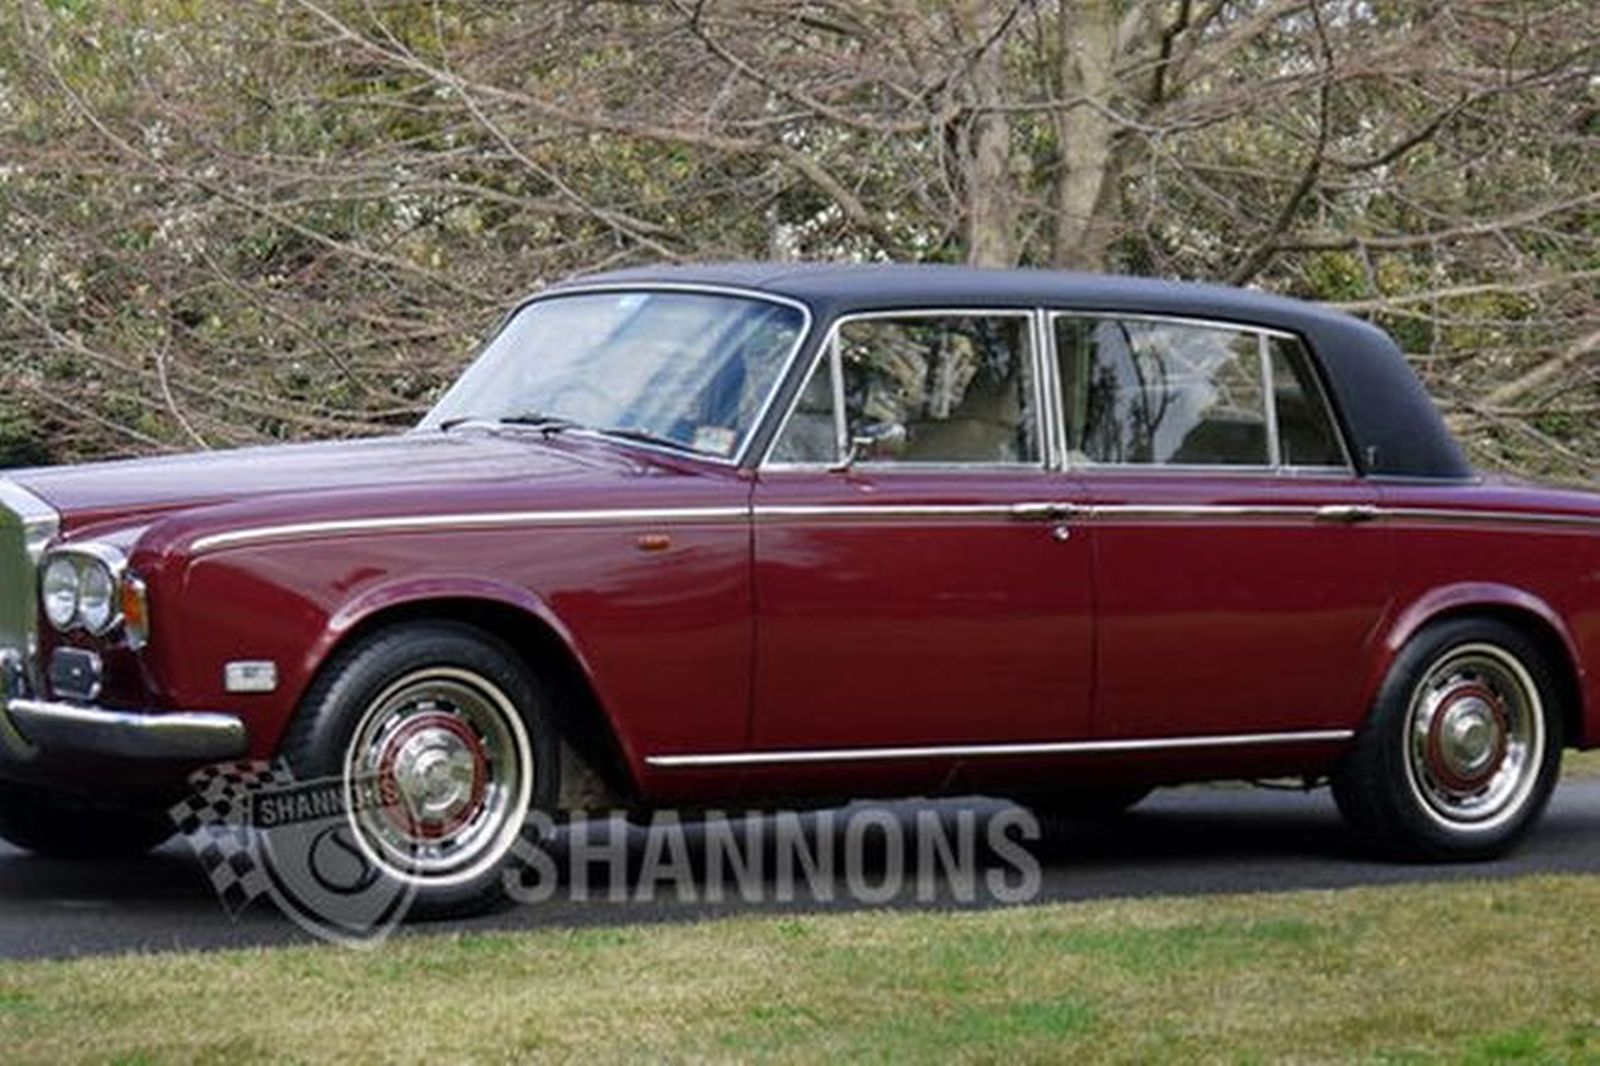 rolls royce silver shadow lwb saloon auctions lot 17 shannons. Black Bedroom Furniture Sets. Home Design Ideas